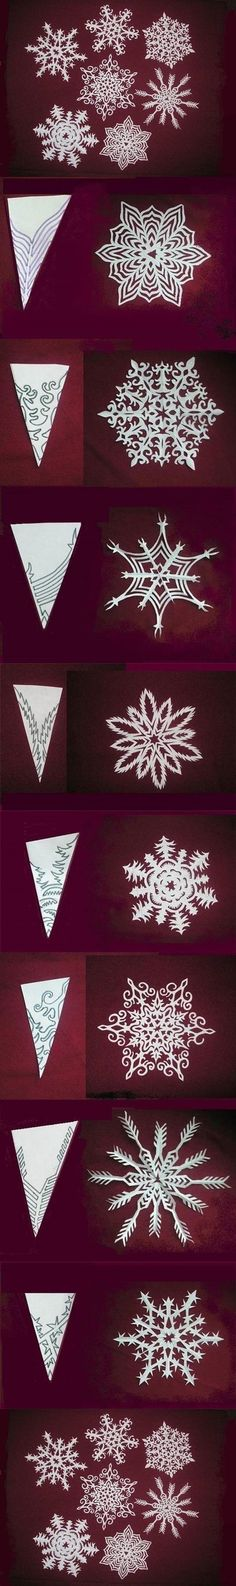 DIY: Snowflake Patterns Decoration